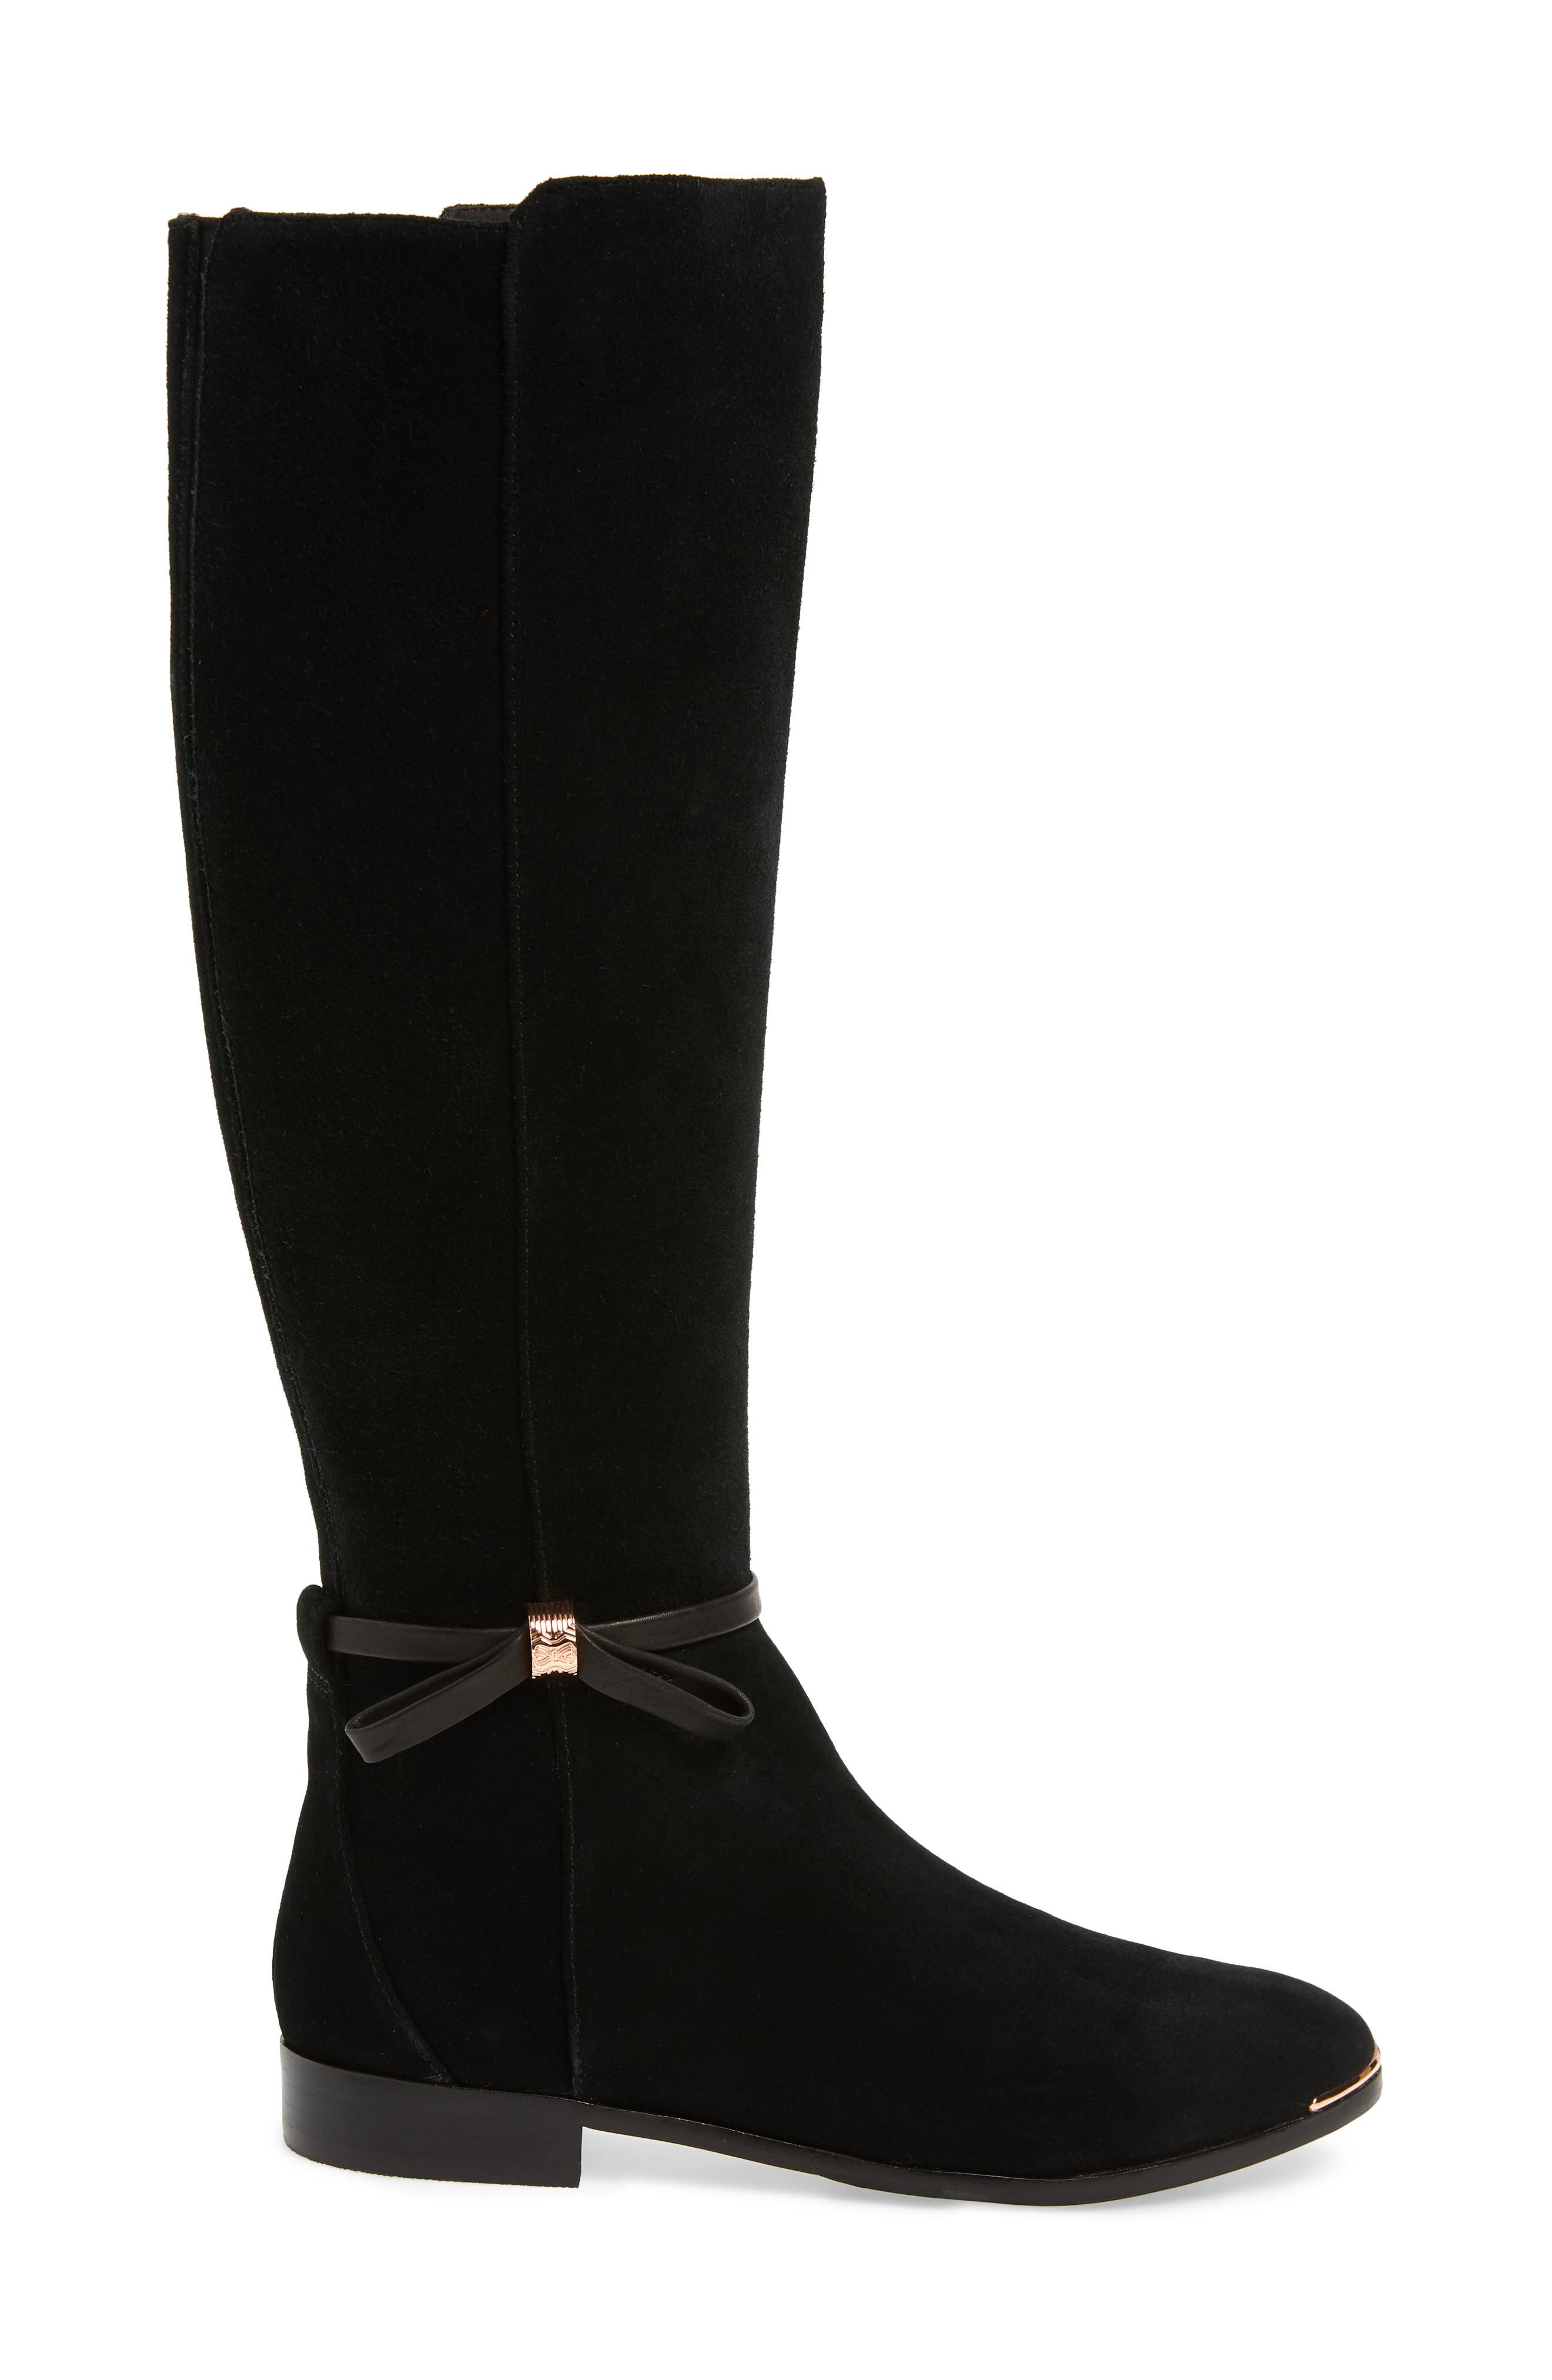 Lykla Knee High Boot,                             Alternate thumbnail 3, color,                             BLACK SUEDE